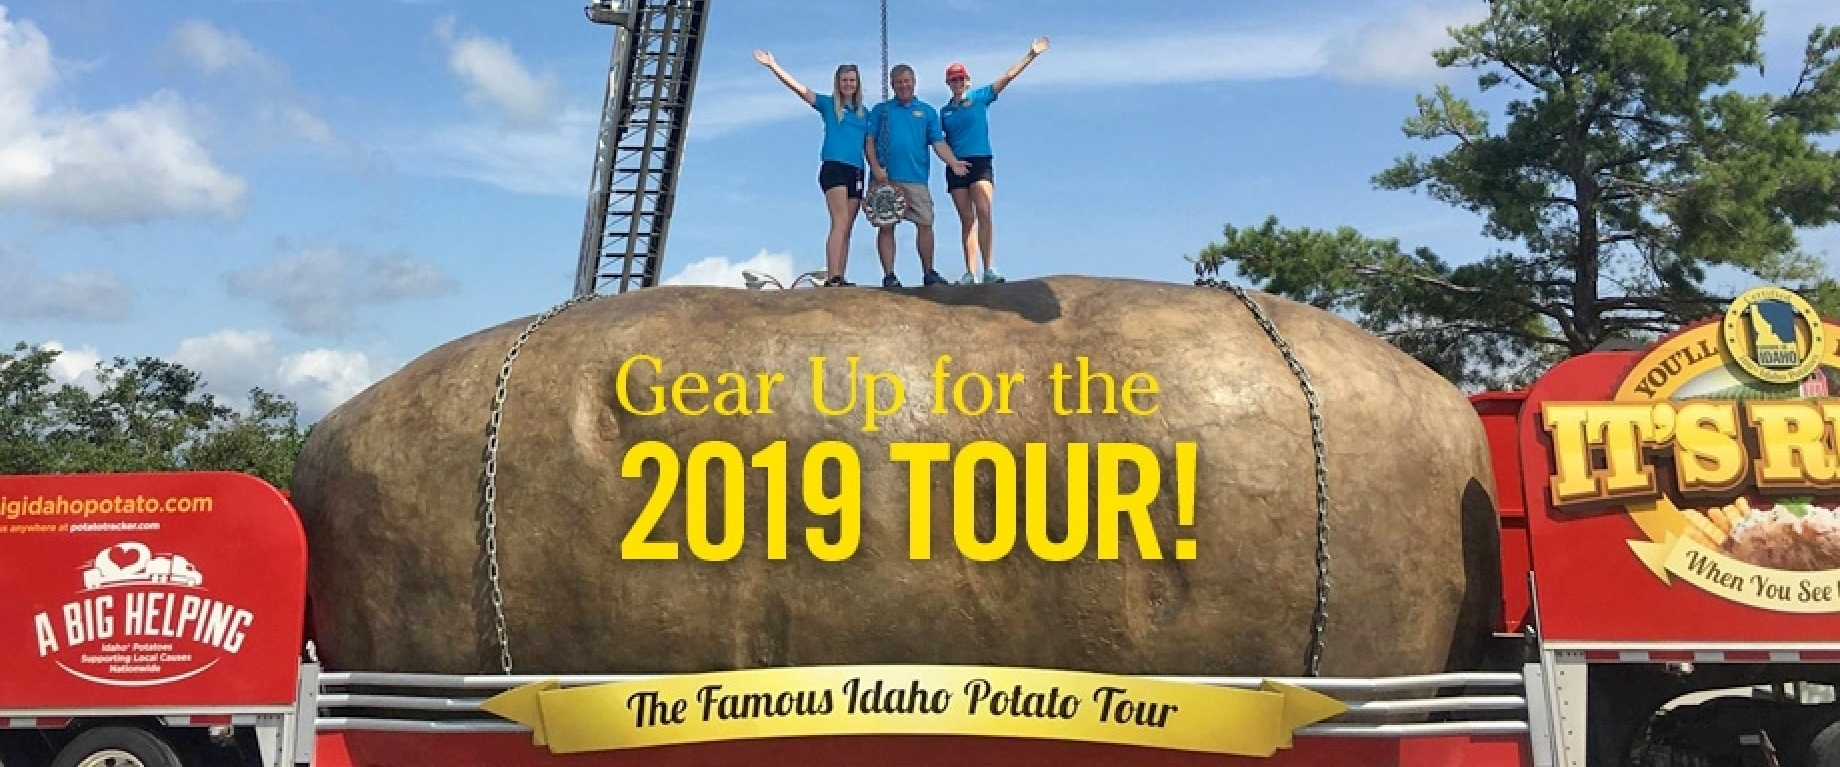 gear-up-for-the-2019-tour-1840x767